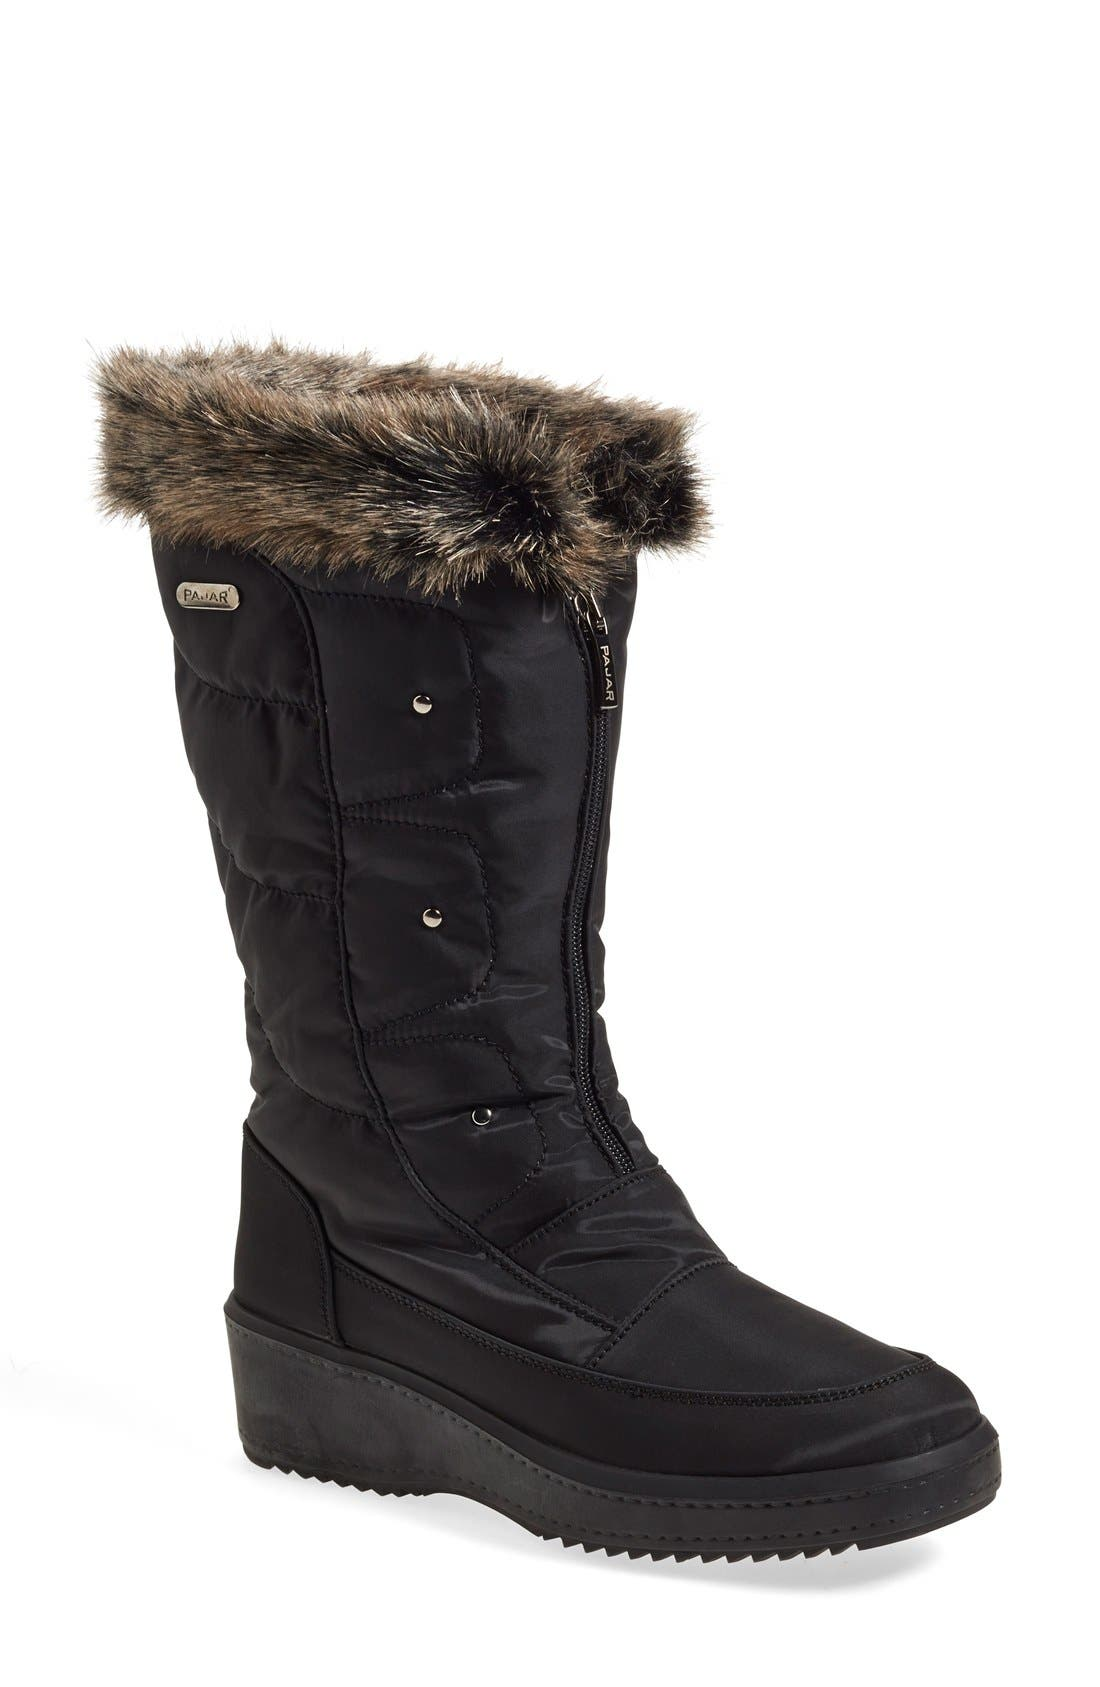 'Louise' Weatherproof Boot,                         Main,                         color, Black Fabric